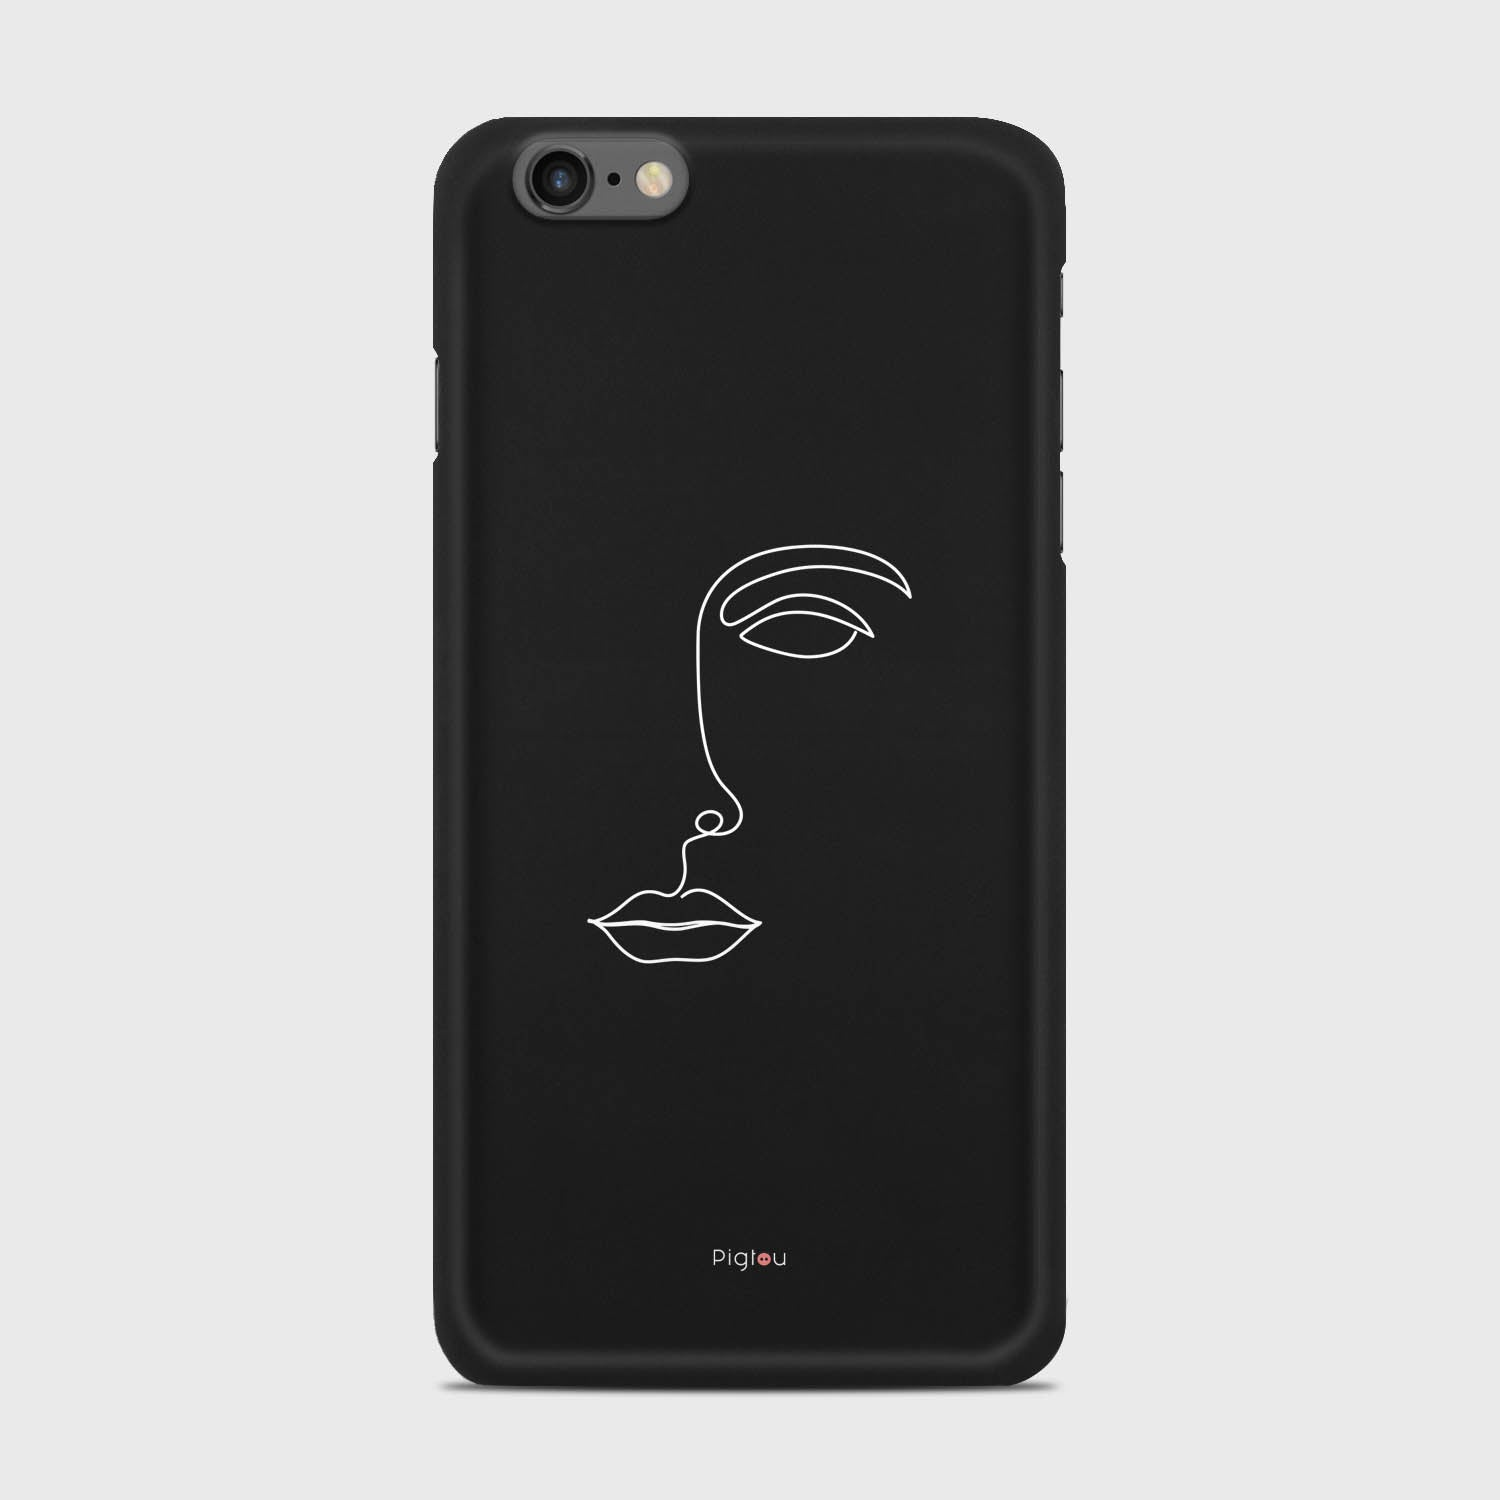 SILHOUETTE FACE iPhone 6 Plus cases | Pigtou